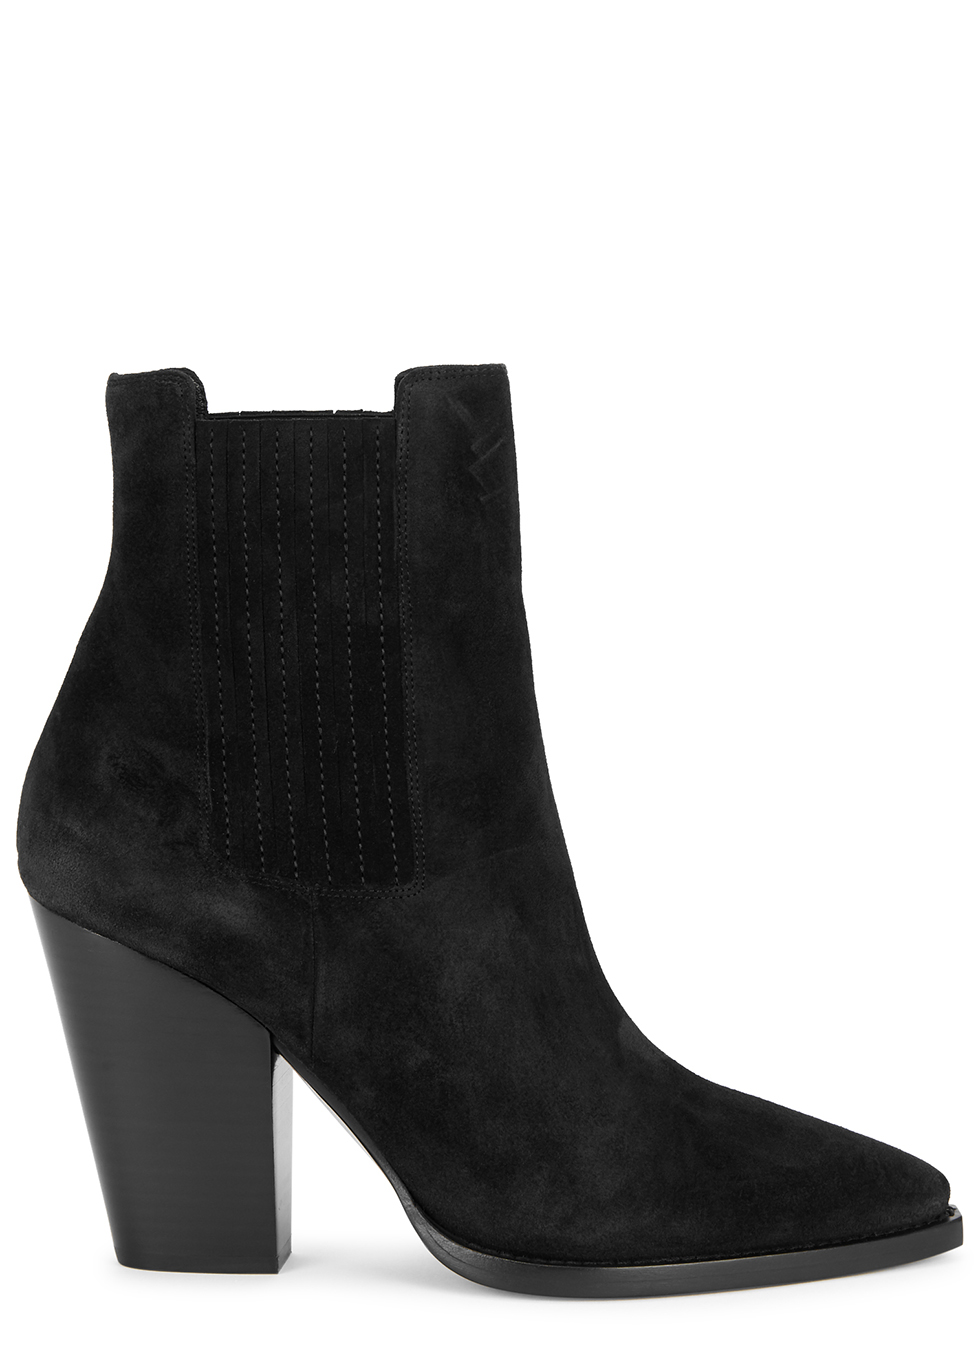 Theo 100 black suede Chelsea boots